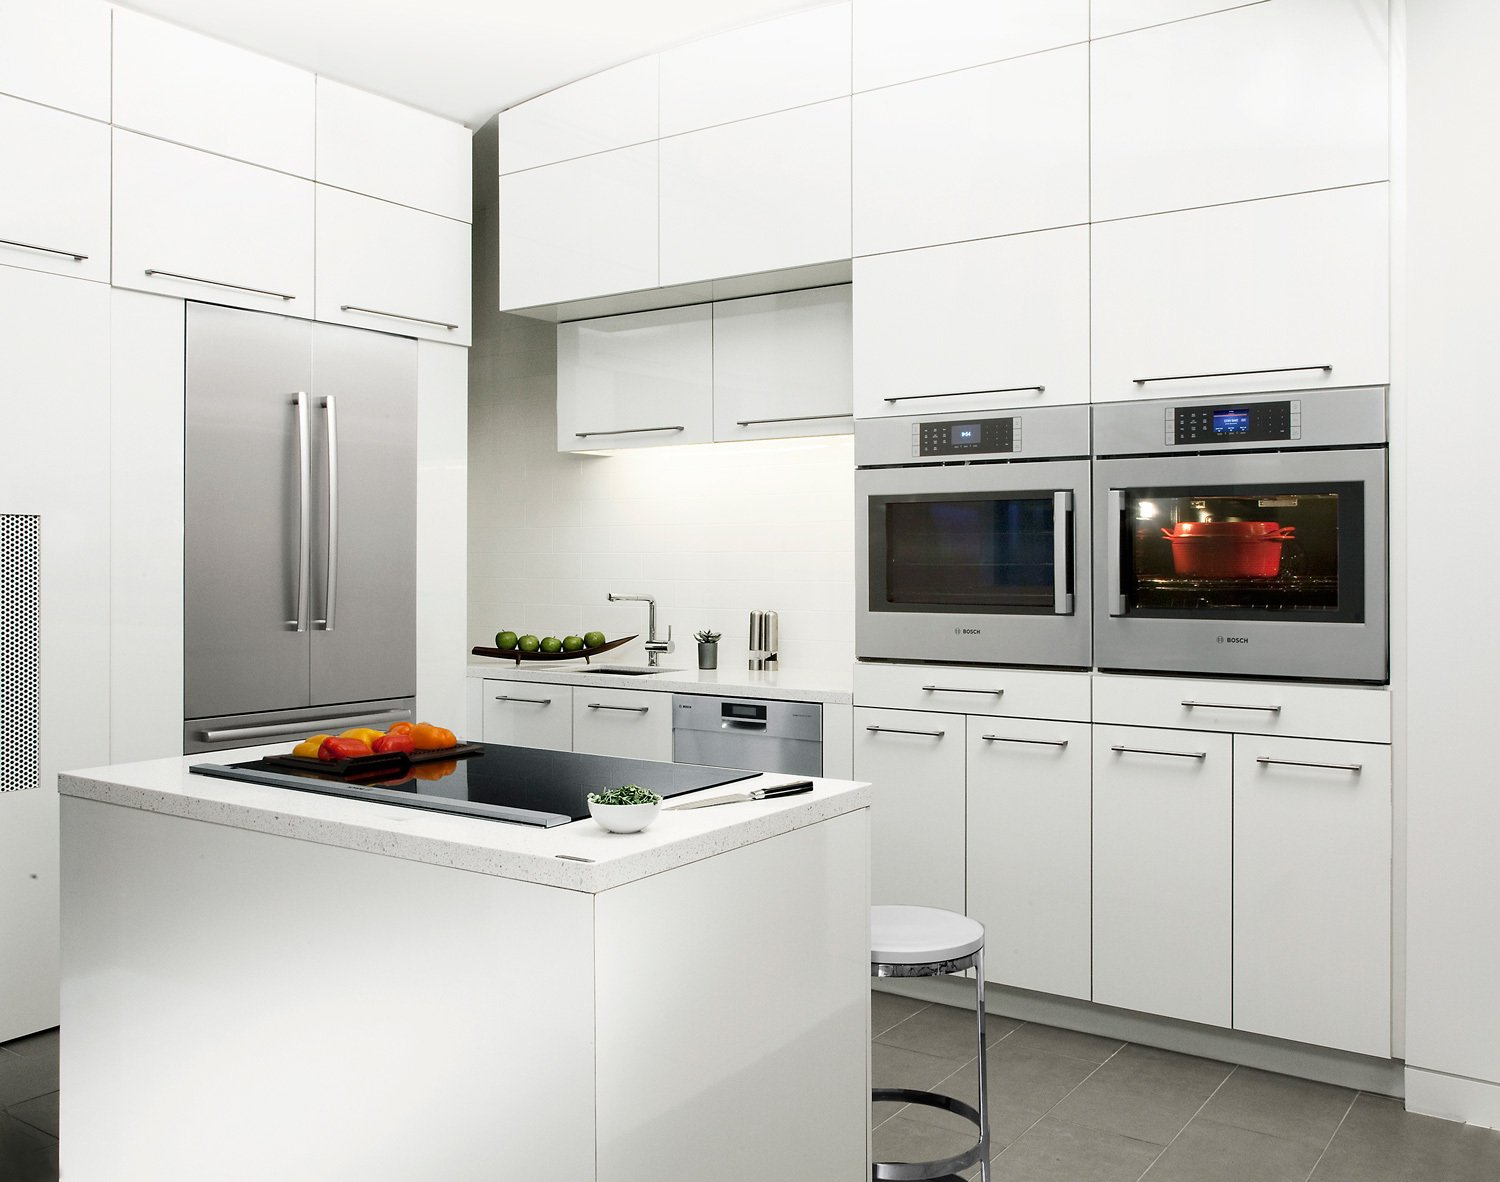 This rational European ethos motivates Bosch appliances' design down to the most minute details. For meals that require large and small pots, the FlexInduction feature on Bosch Benchmark induction cooktops combines two distinct cooking zones into one contiguous area, providing total fluidity of movement.  Kitchen by Madainn Jonah Krall from Modern Kitchen